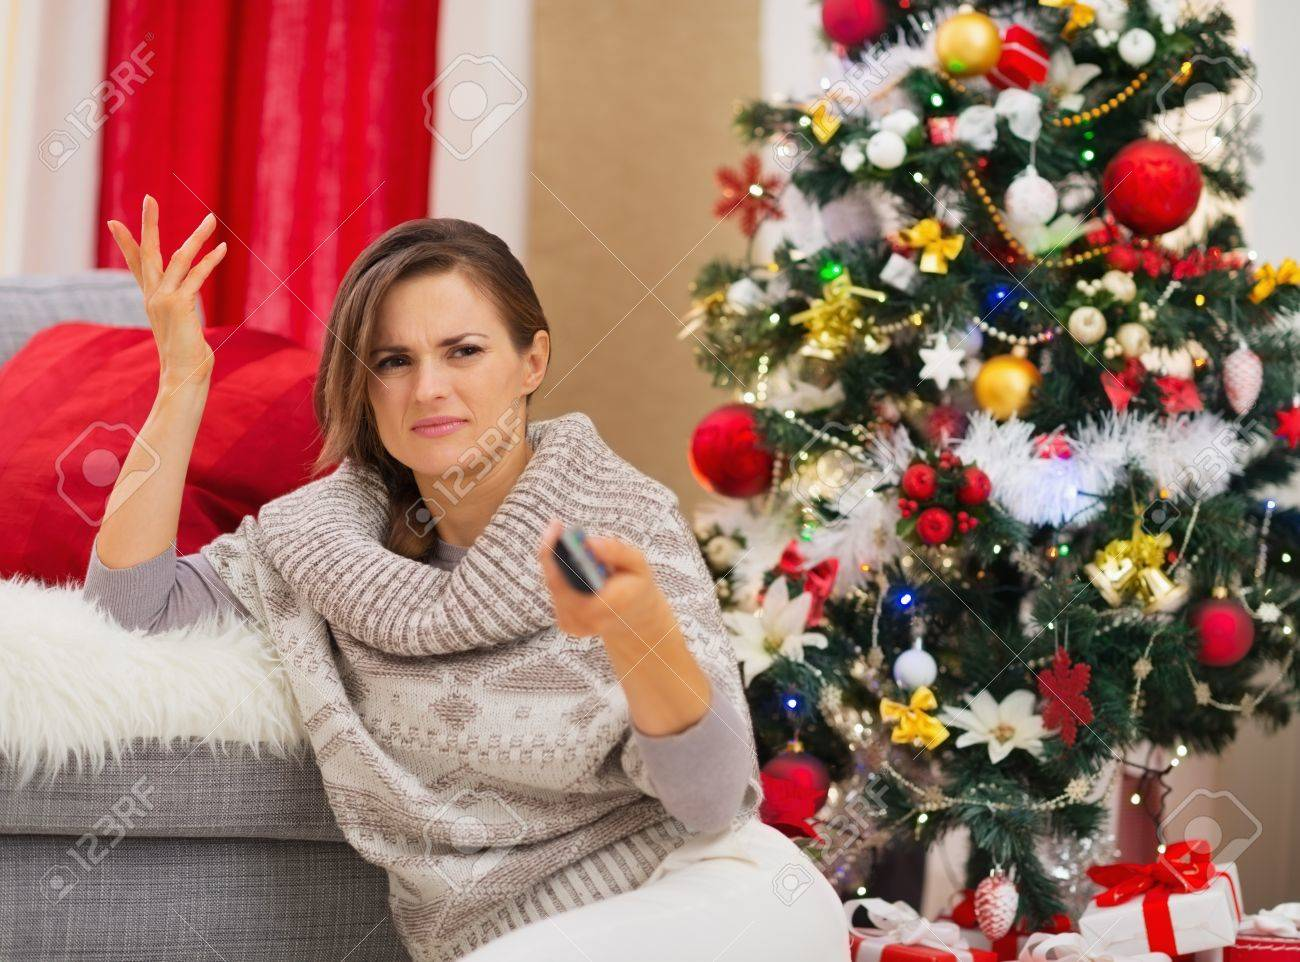 Frustrated woman with TV remote control near Christmas tree Stock Photo - 16467209